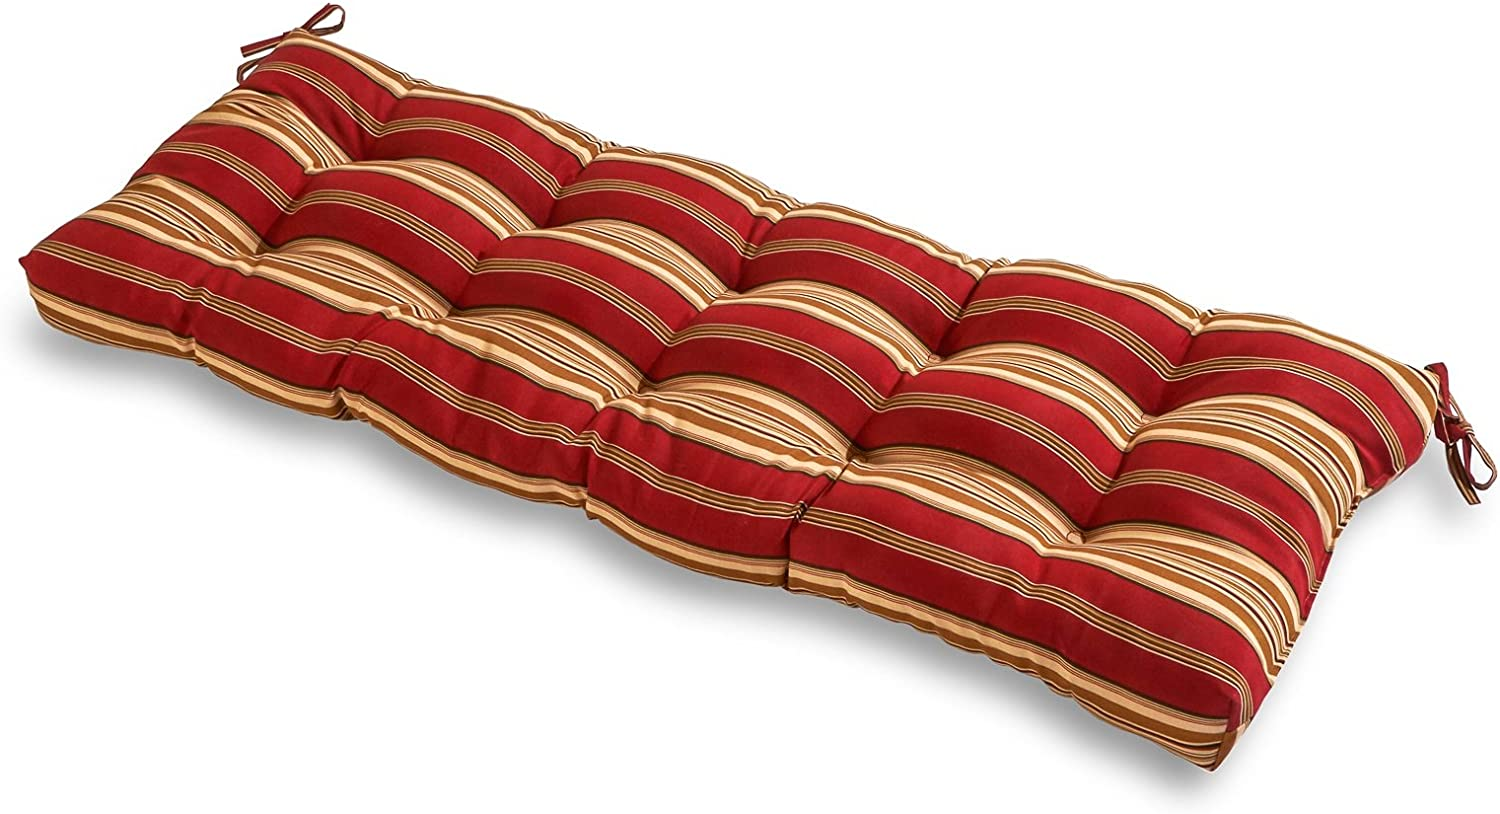 Greendale Home Fashions Indoor Outdoor Bench Cushion, Roma Stripe, 51-Inch